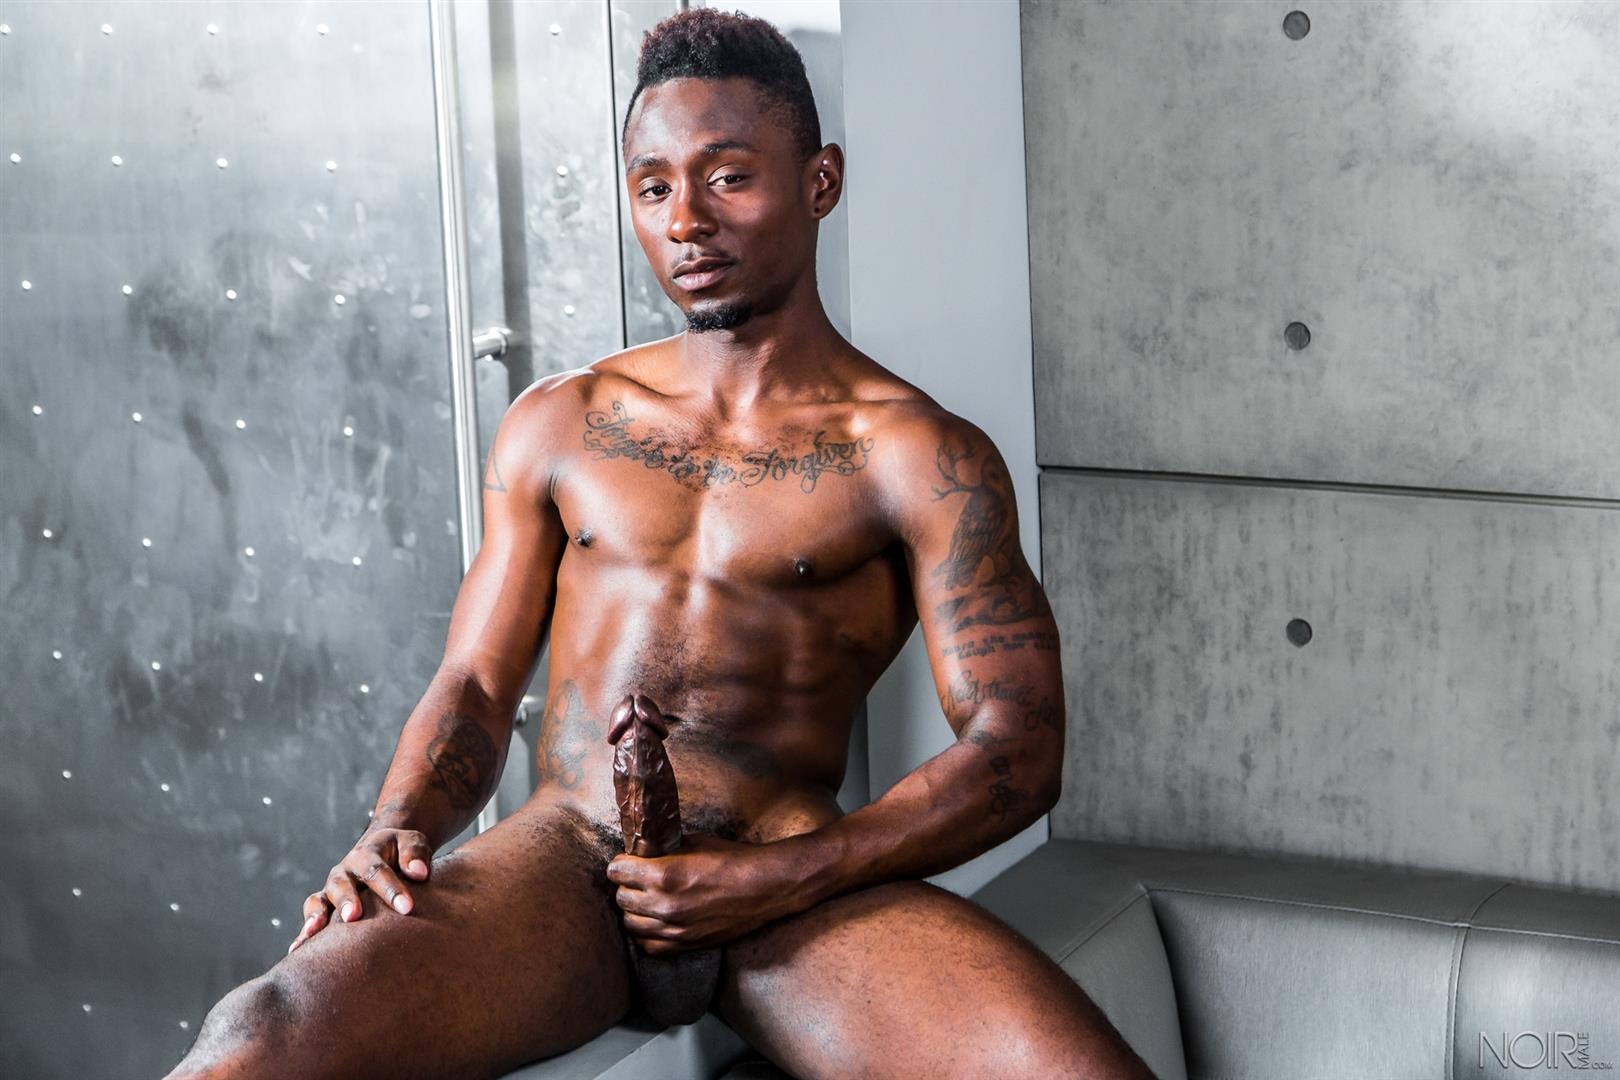 Twink Gets An Interracial Mouthful Of Big Cocks